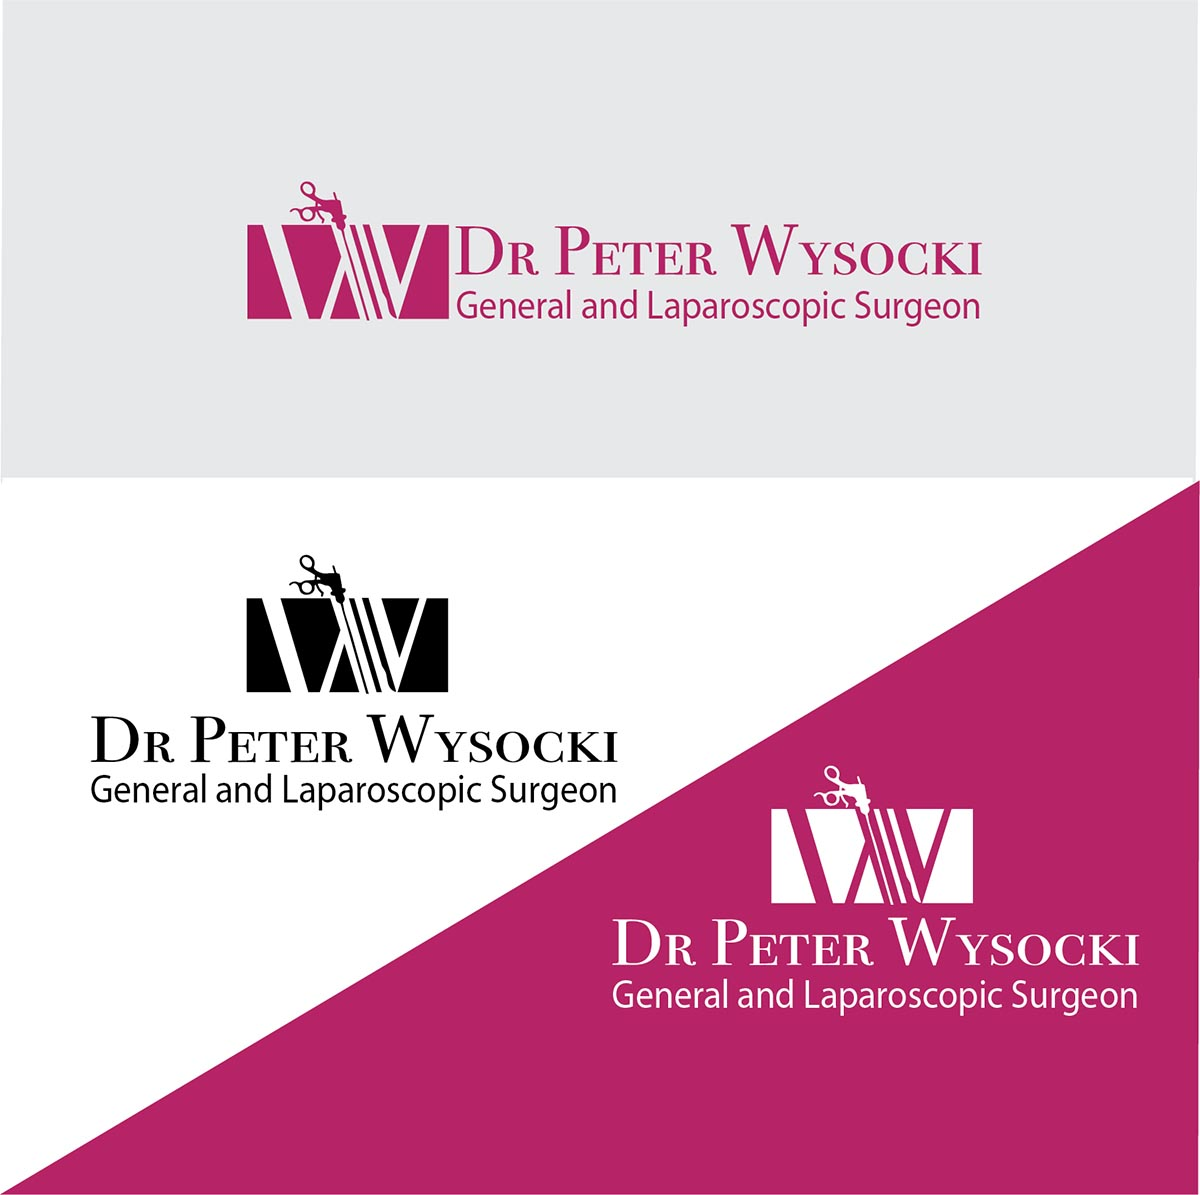 Modern Professional Health Care Logo Design For Dr Peter Wysocki General And Laparoscopic Surgeon By Idea Works Design 14567809